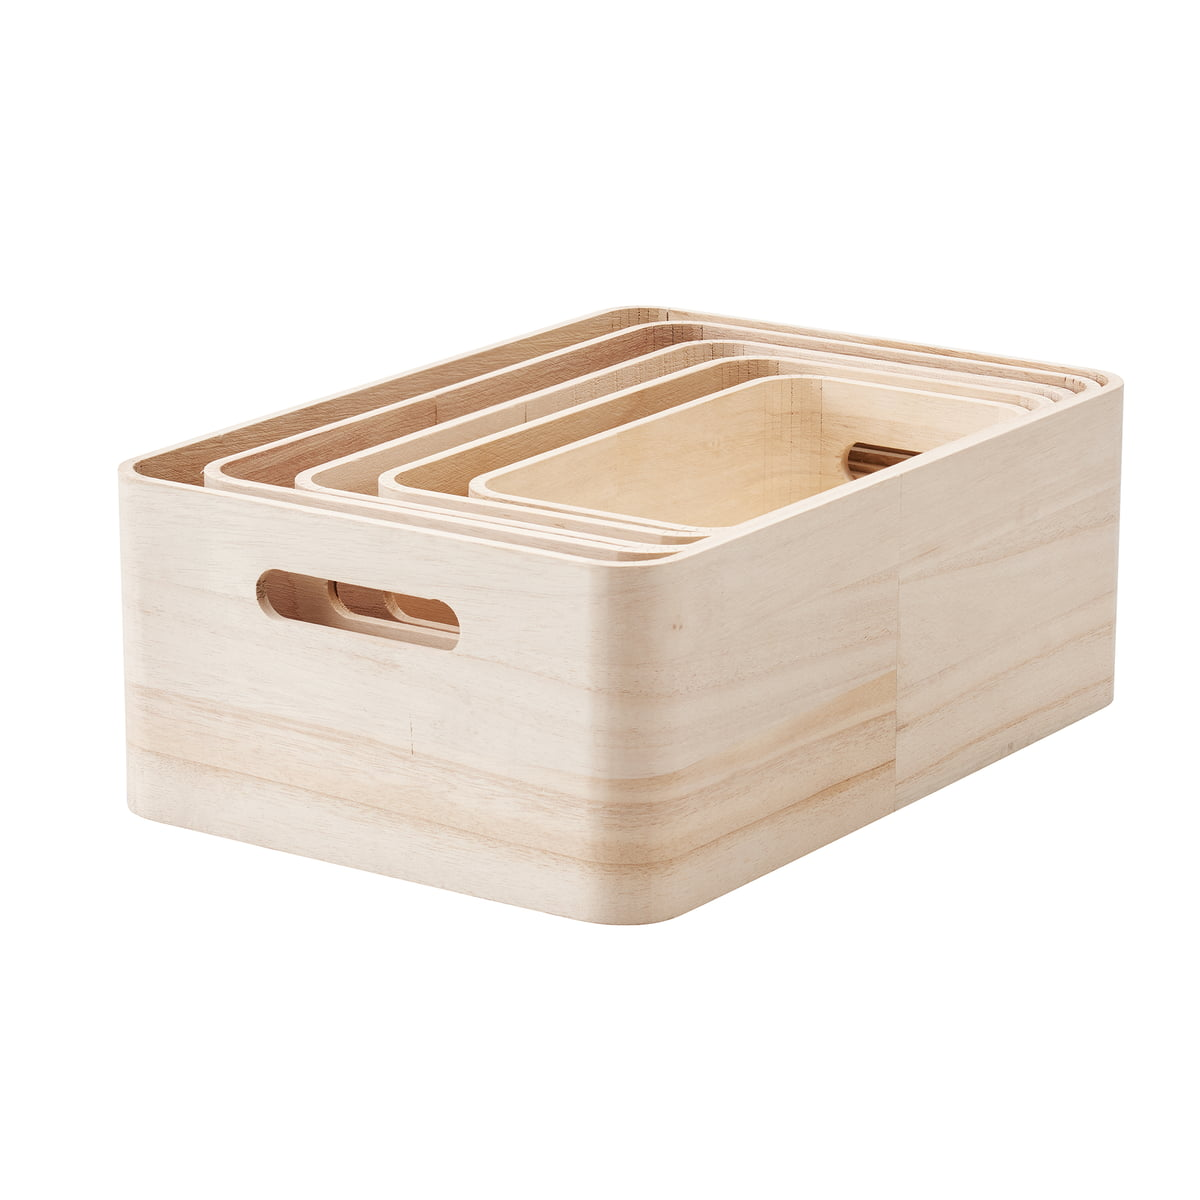 Attirant Save It Storage Boxes 5 Pcs. By Rig Tig By Stelton